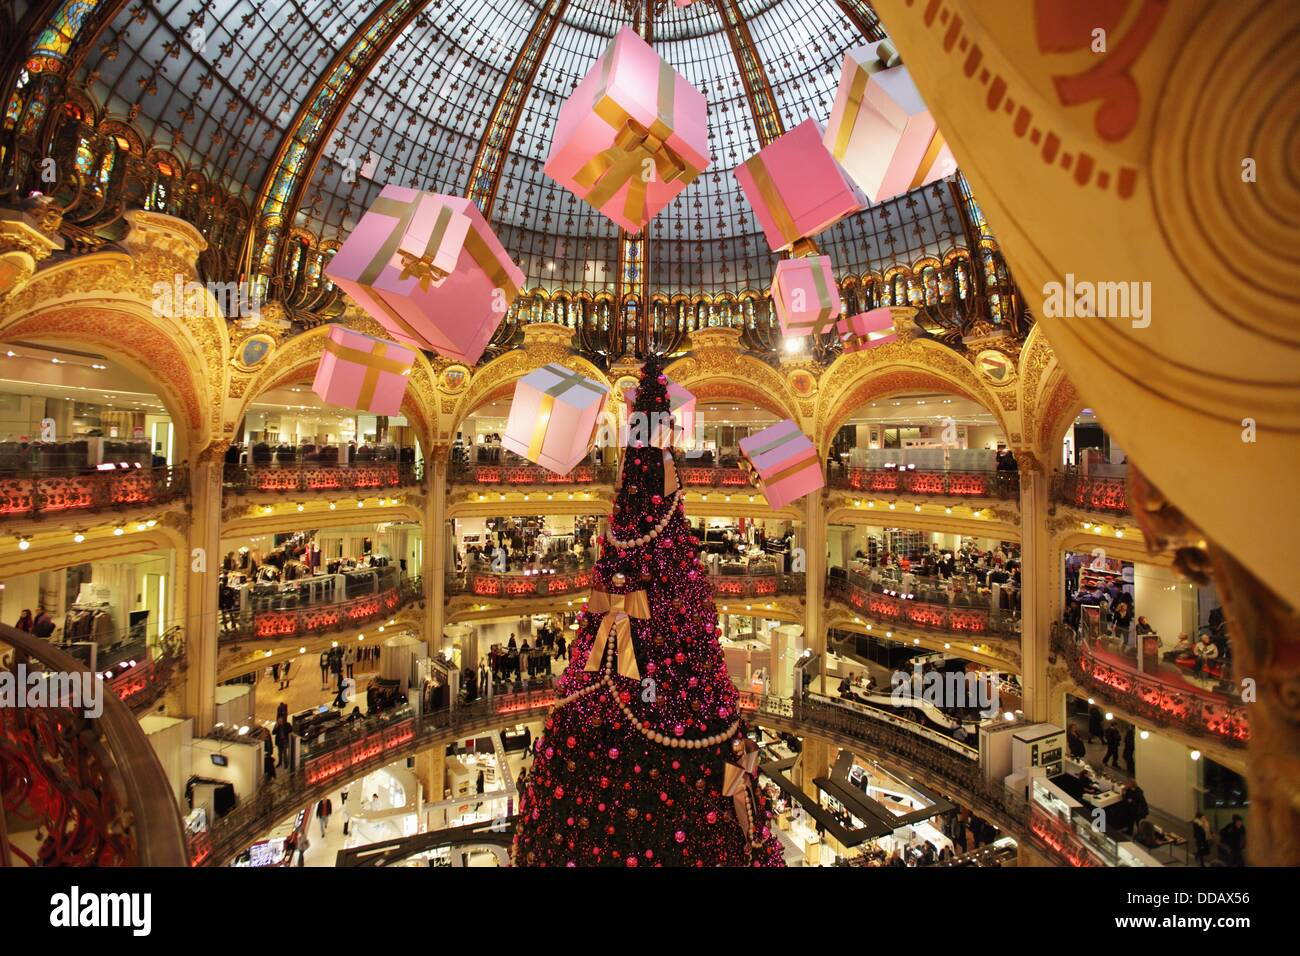 christmas decorations in galeries lafayette department store paris le de france france